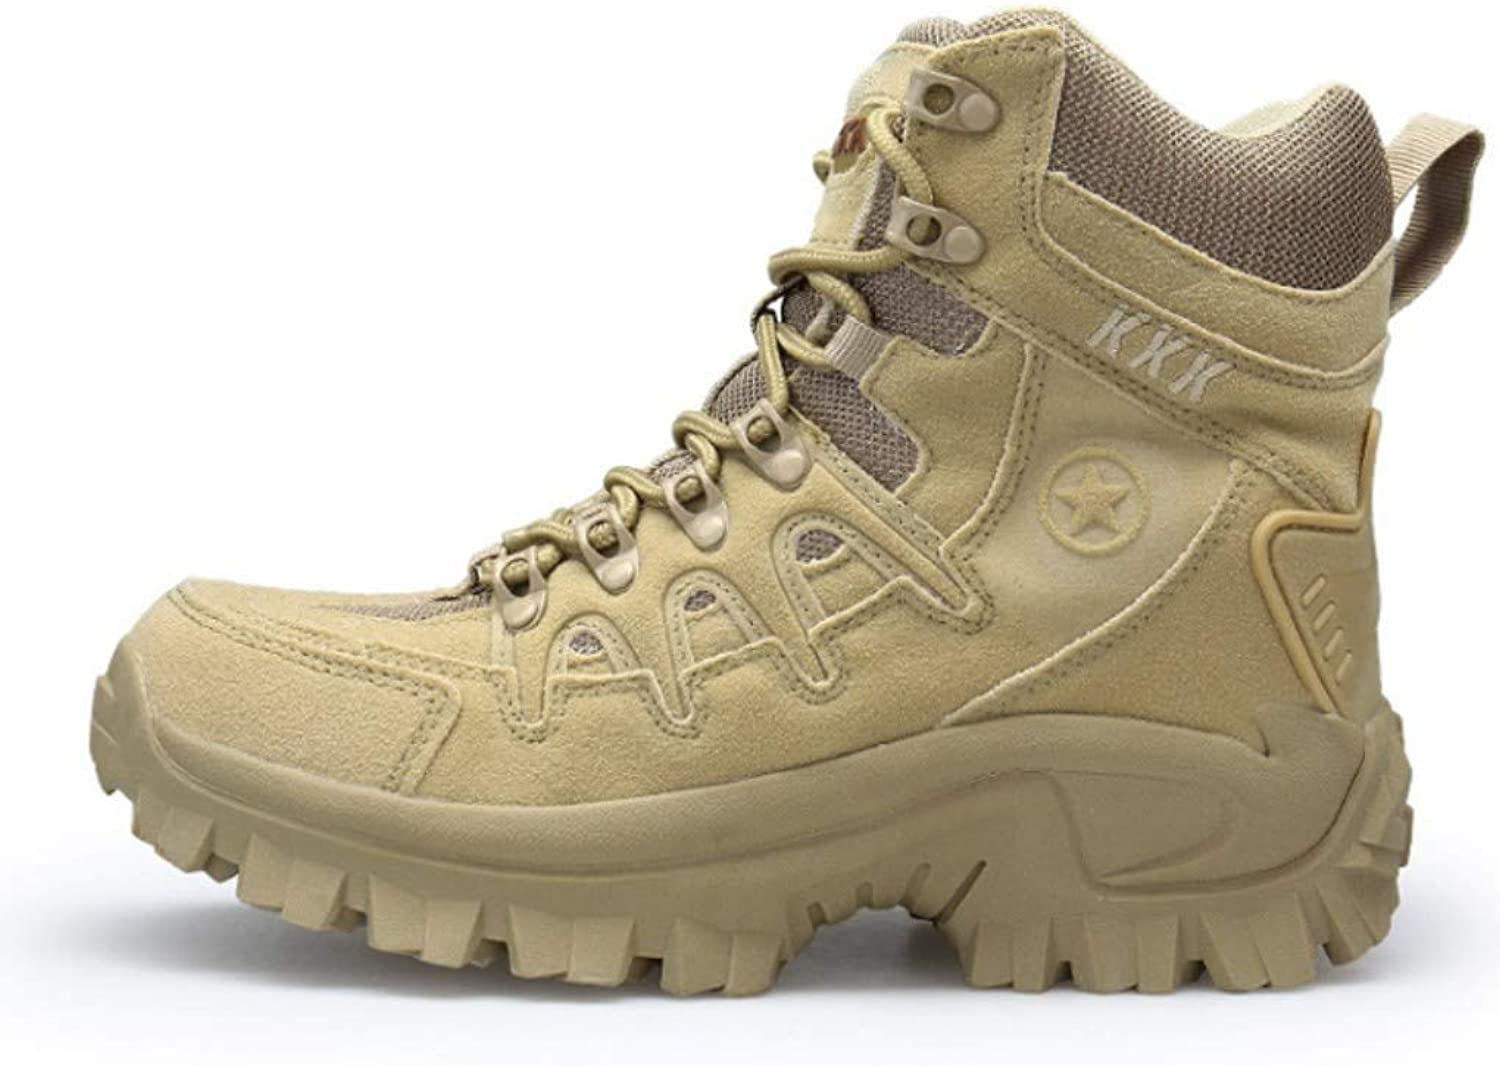 SIKESONG Autumn Men Military Boots Special Force Tactical Desert Combat Boats Outdoor shoes